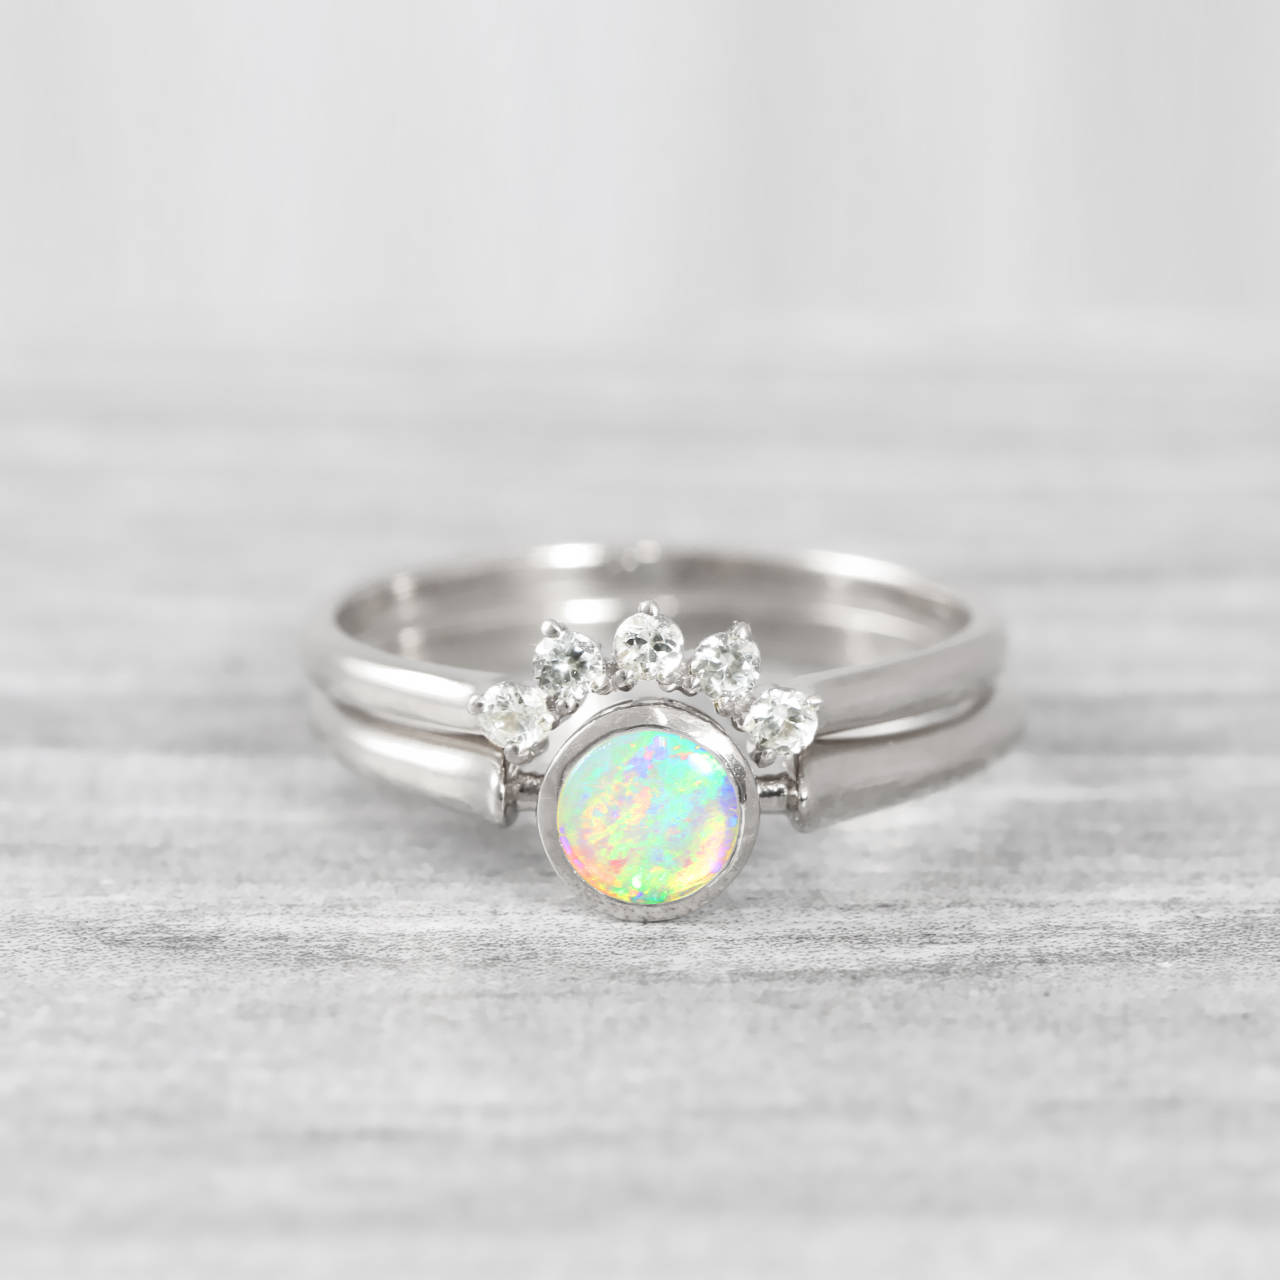 Simple Wedding Ring.Opal And Diamond Engagement Wedding Ring Set Handmade In Rose White Yellow Gold Art Deco Inspired Thin Petite Band Minimal Simple Unique